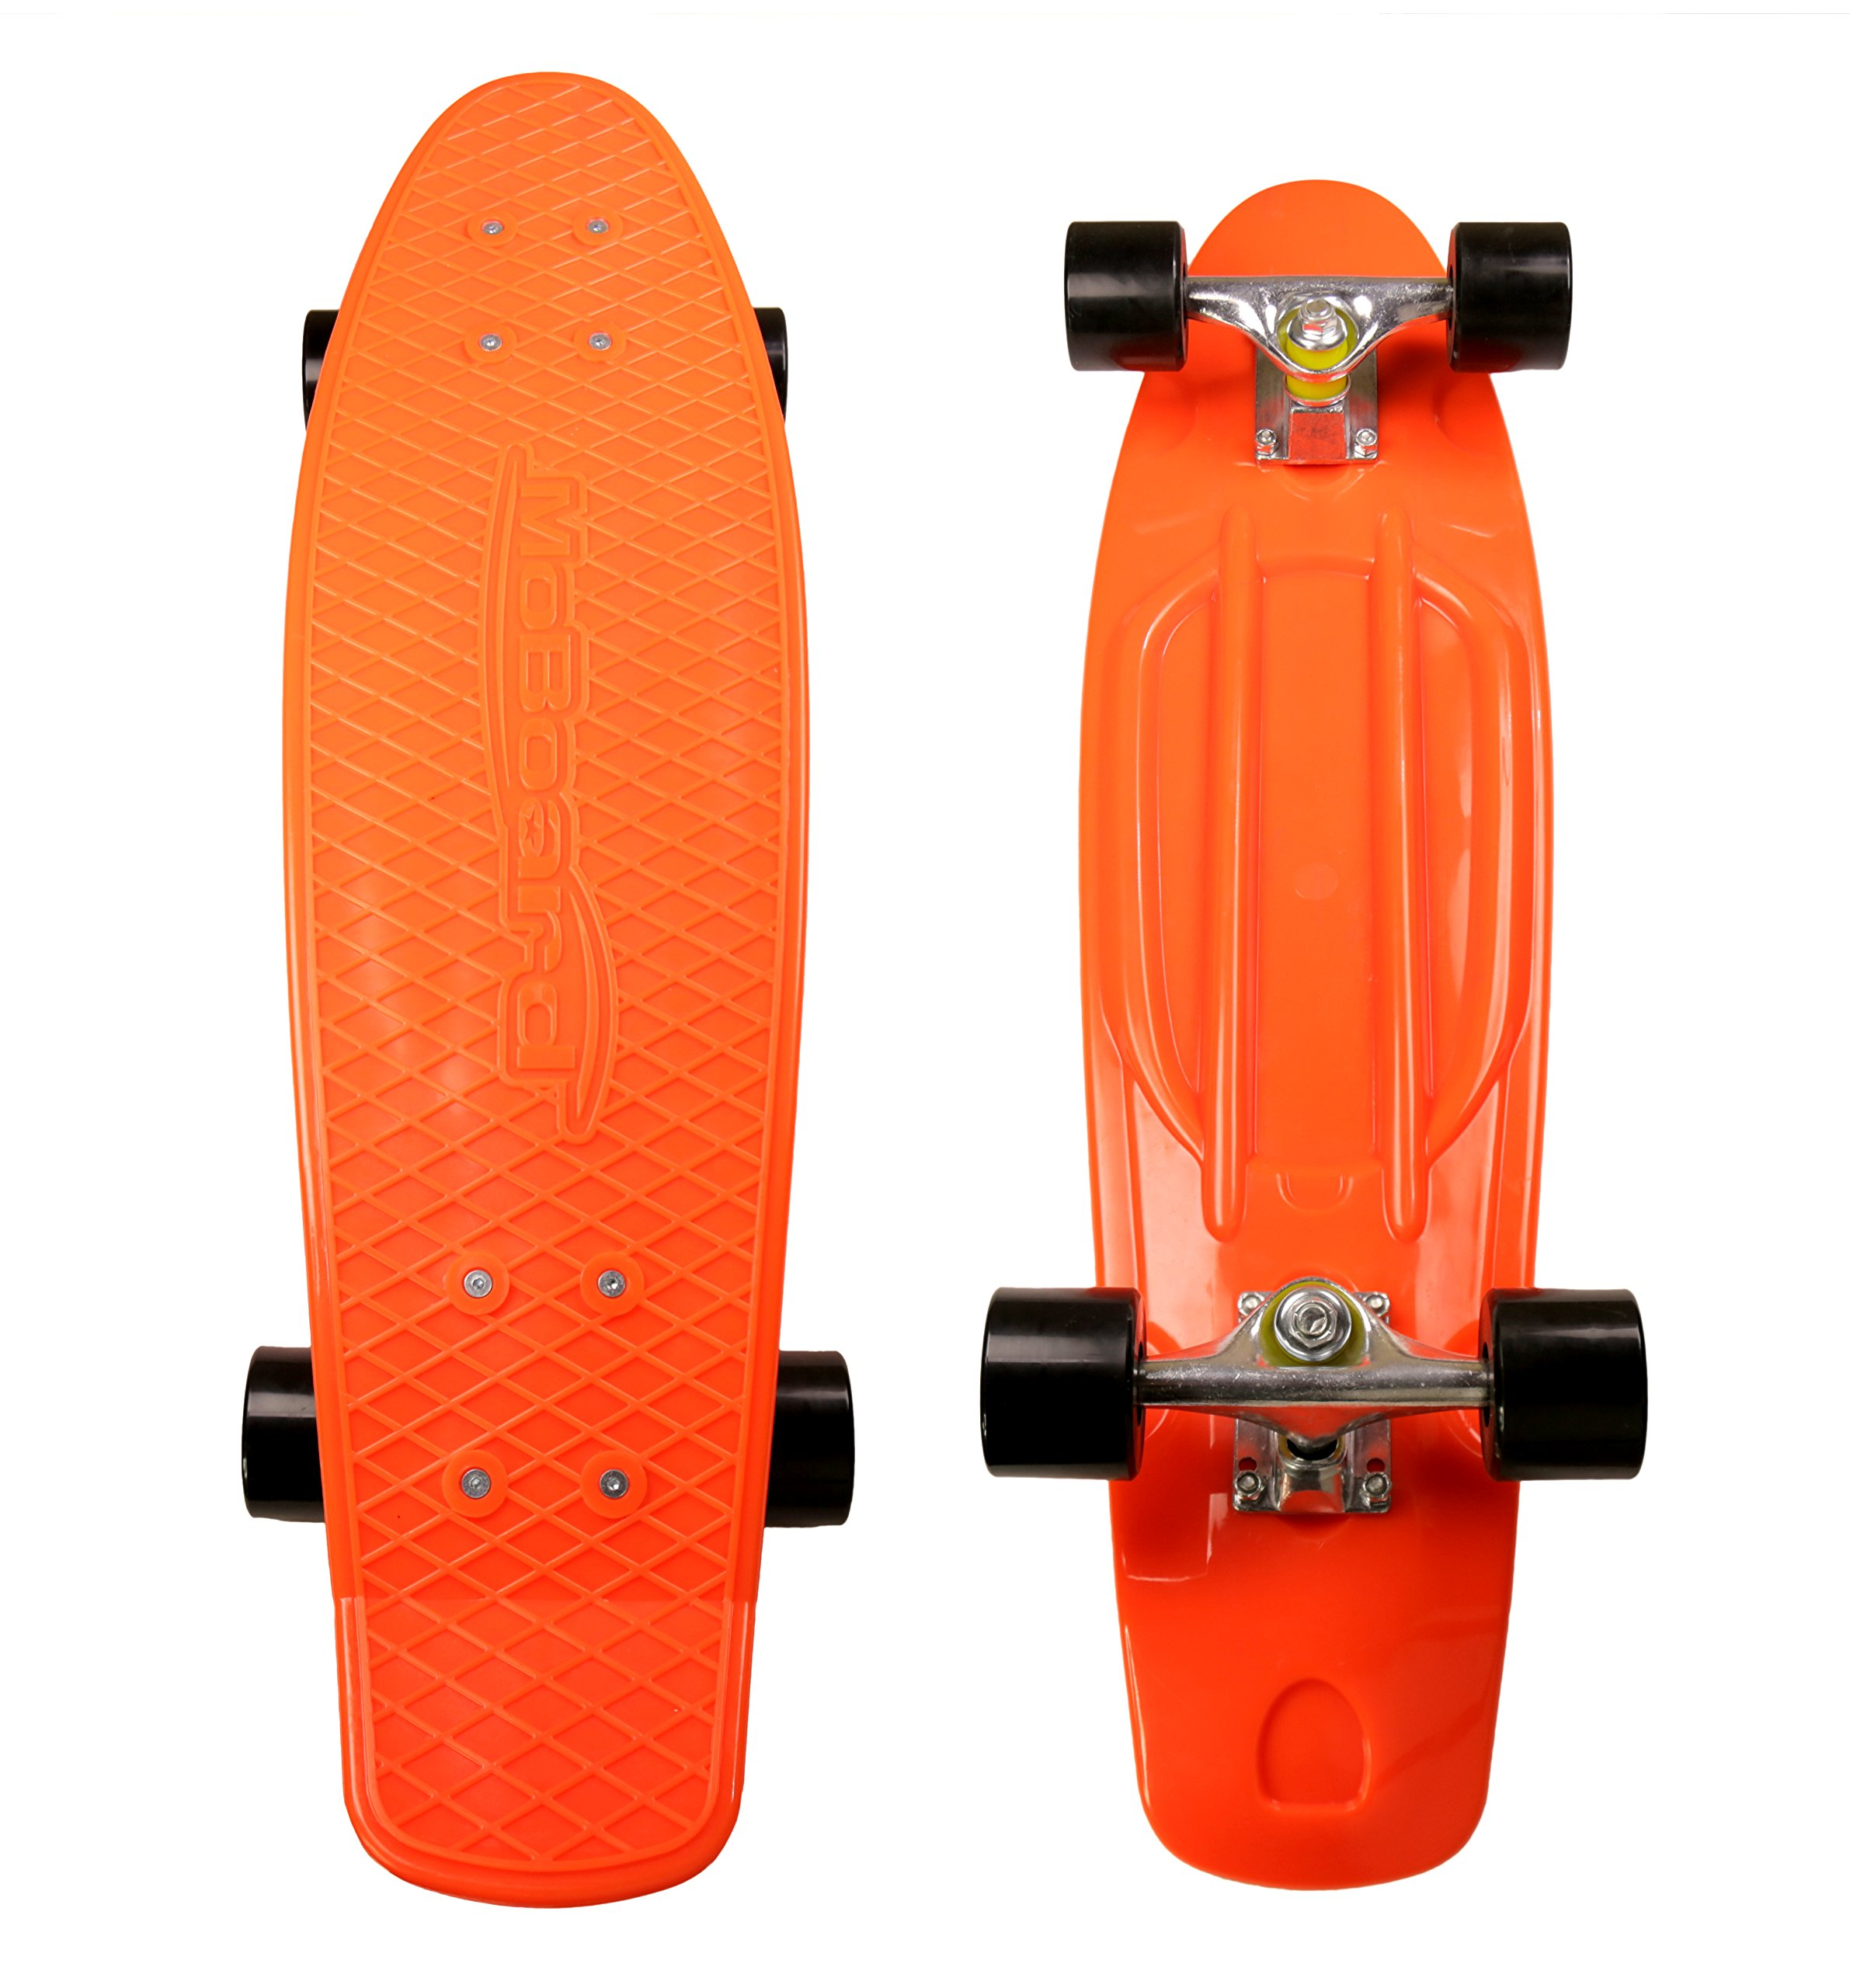 MoBoard Classic 27'' Skateboard | Pro and Beginner | 27 inch Vintage Style with Interchangeable Wheels, Enhanced Bearings | Portable, Lightweight | Durable Rails. (Orange - Black) by MoBoard